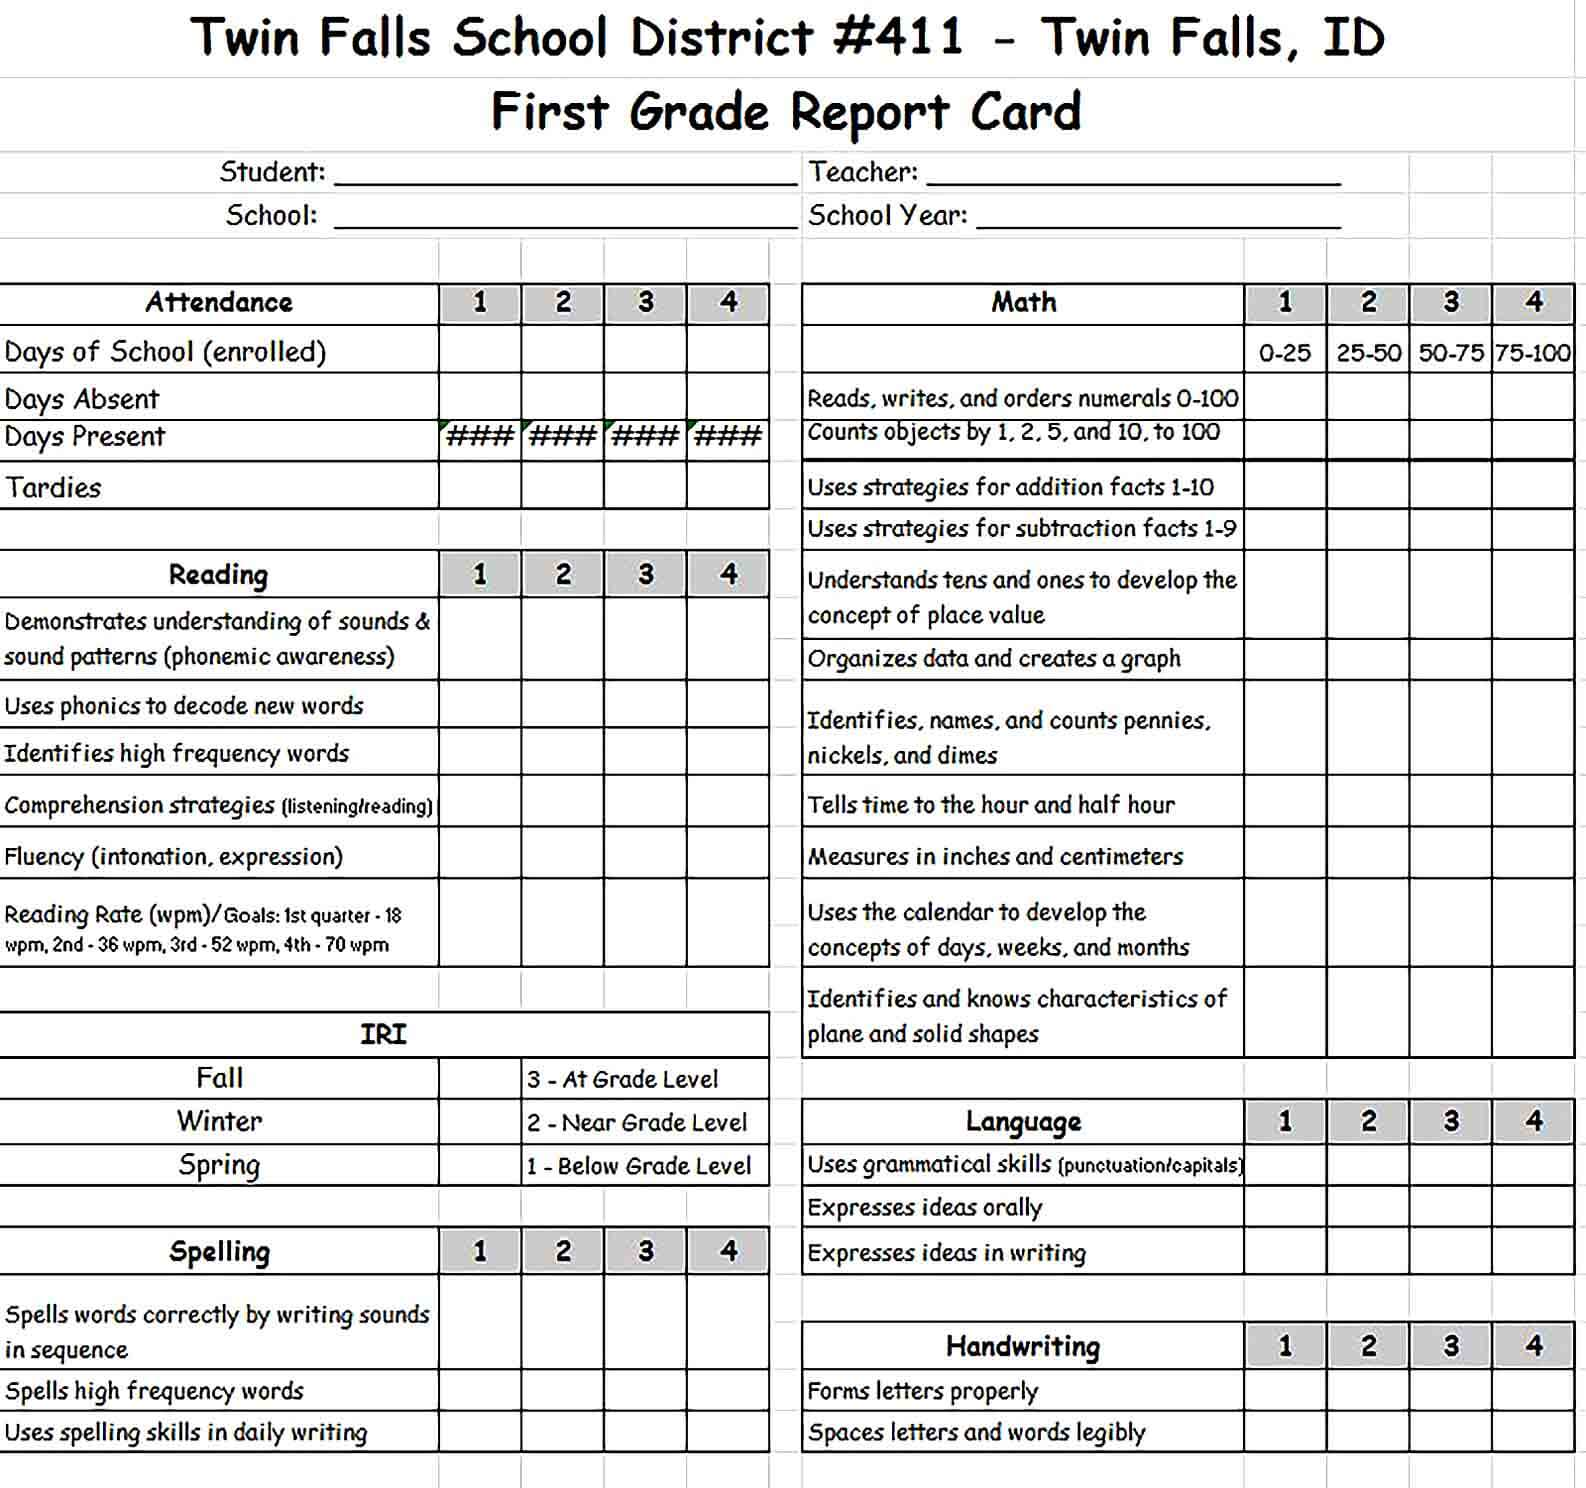 Sample First Grade Report Card Template Excel Format for